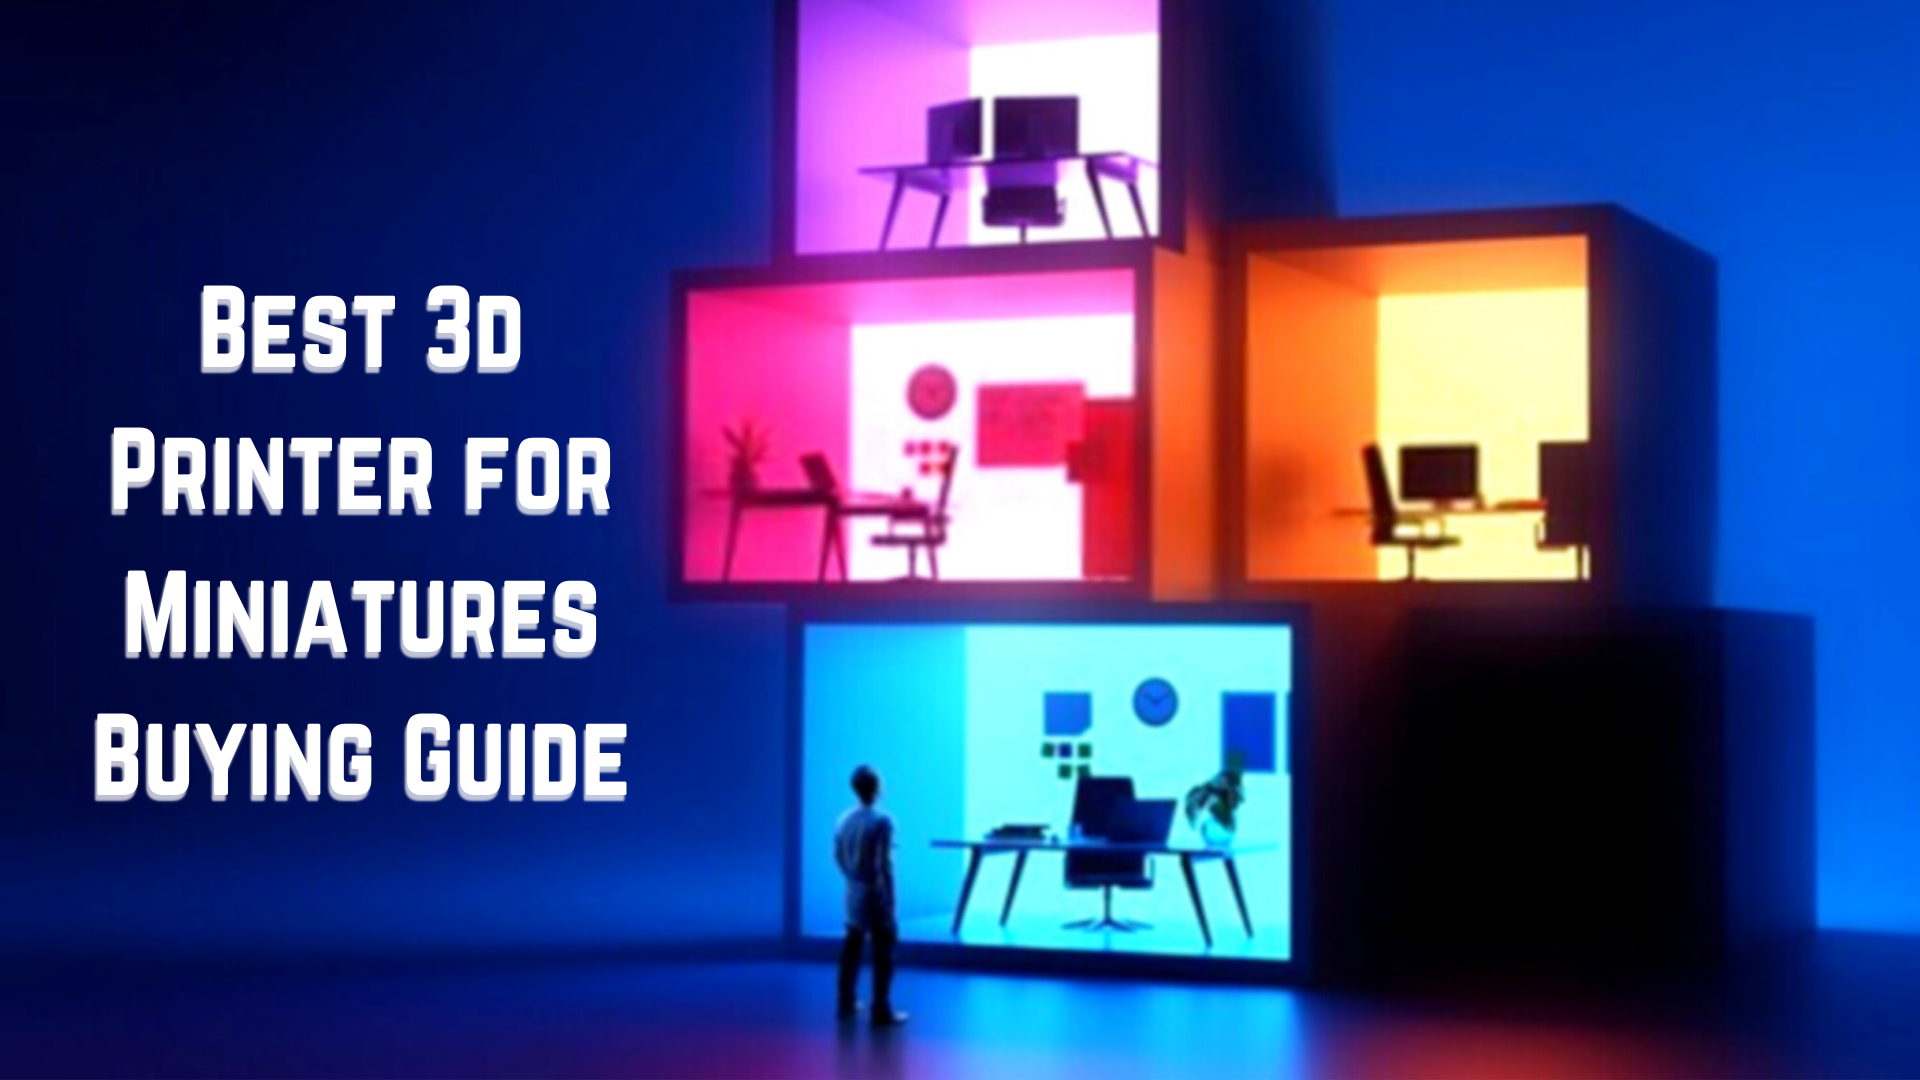 Best 3d Printers for Miniatures Buying Guide